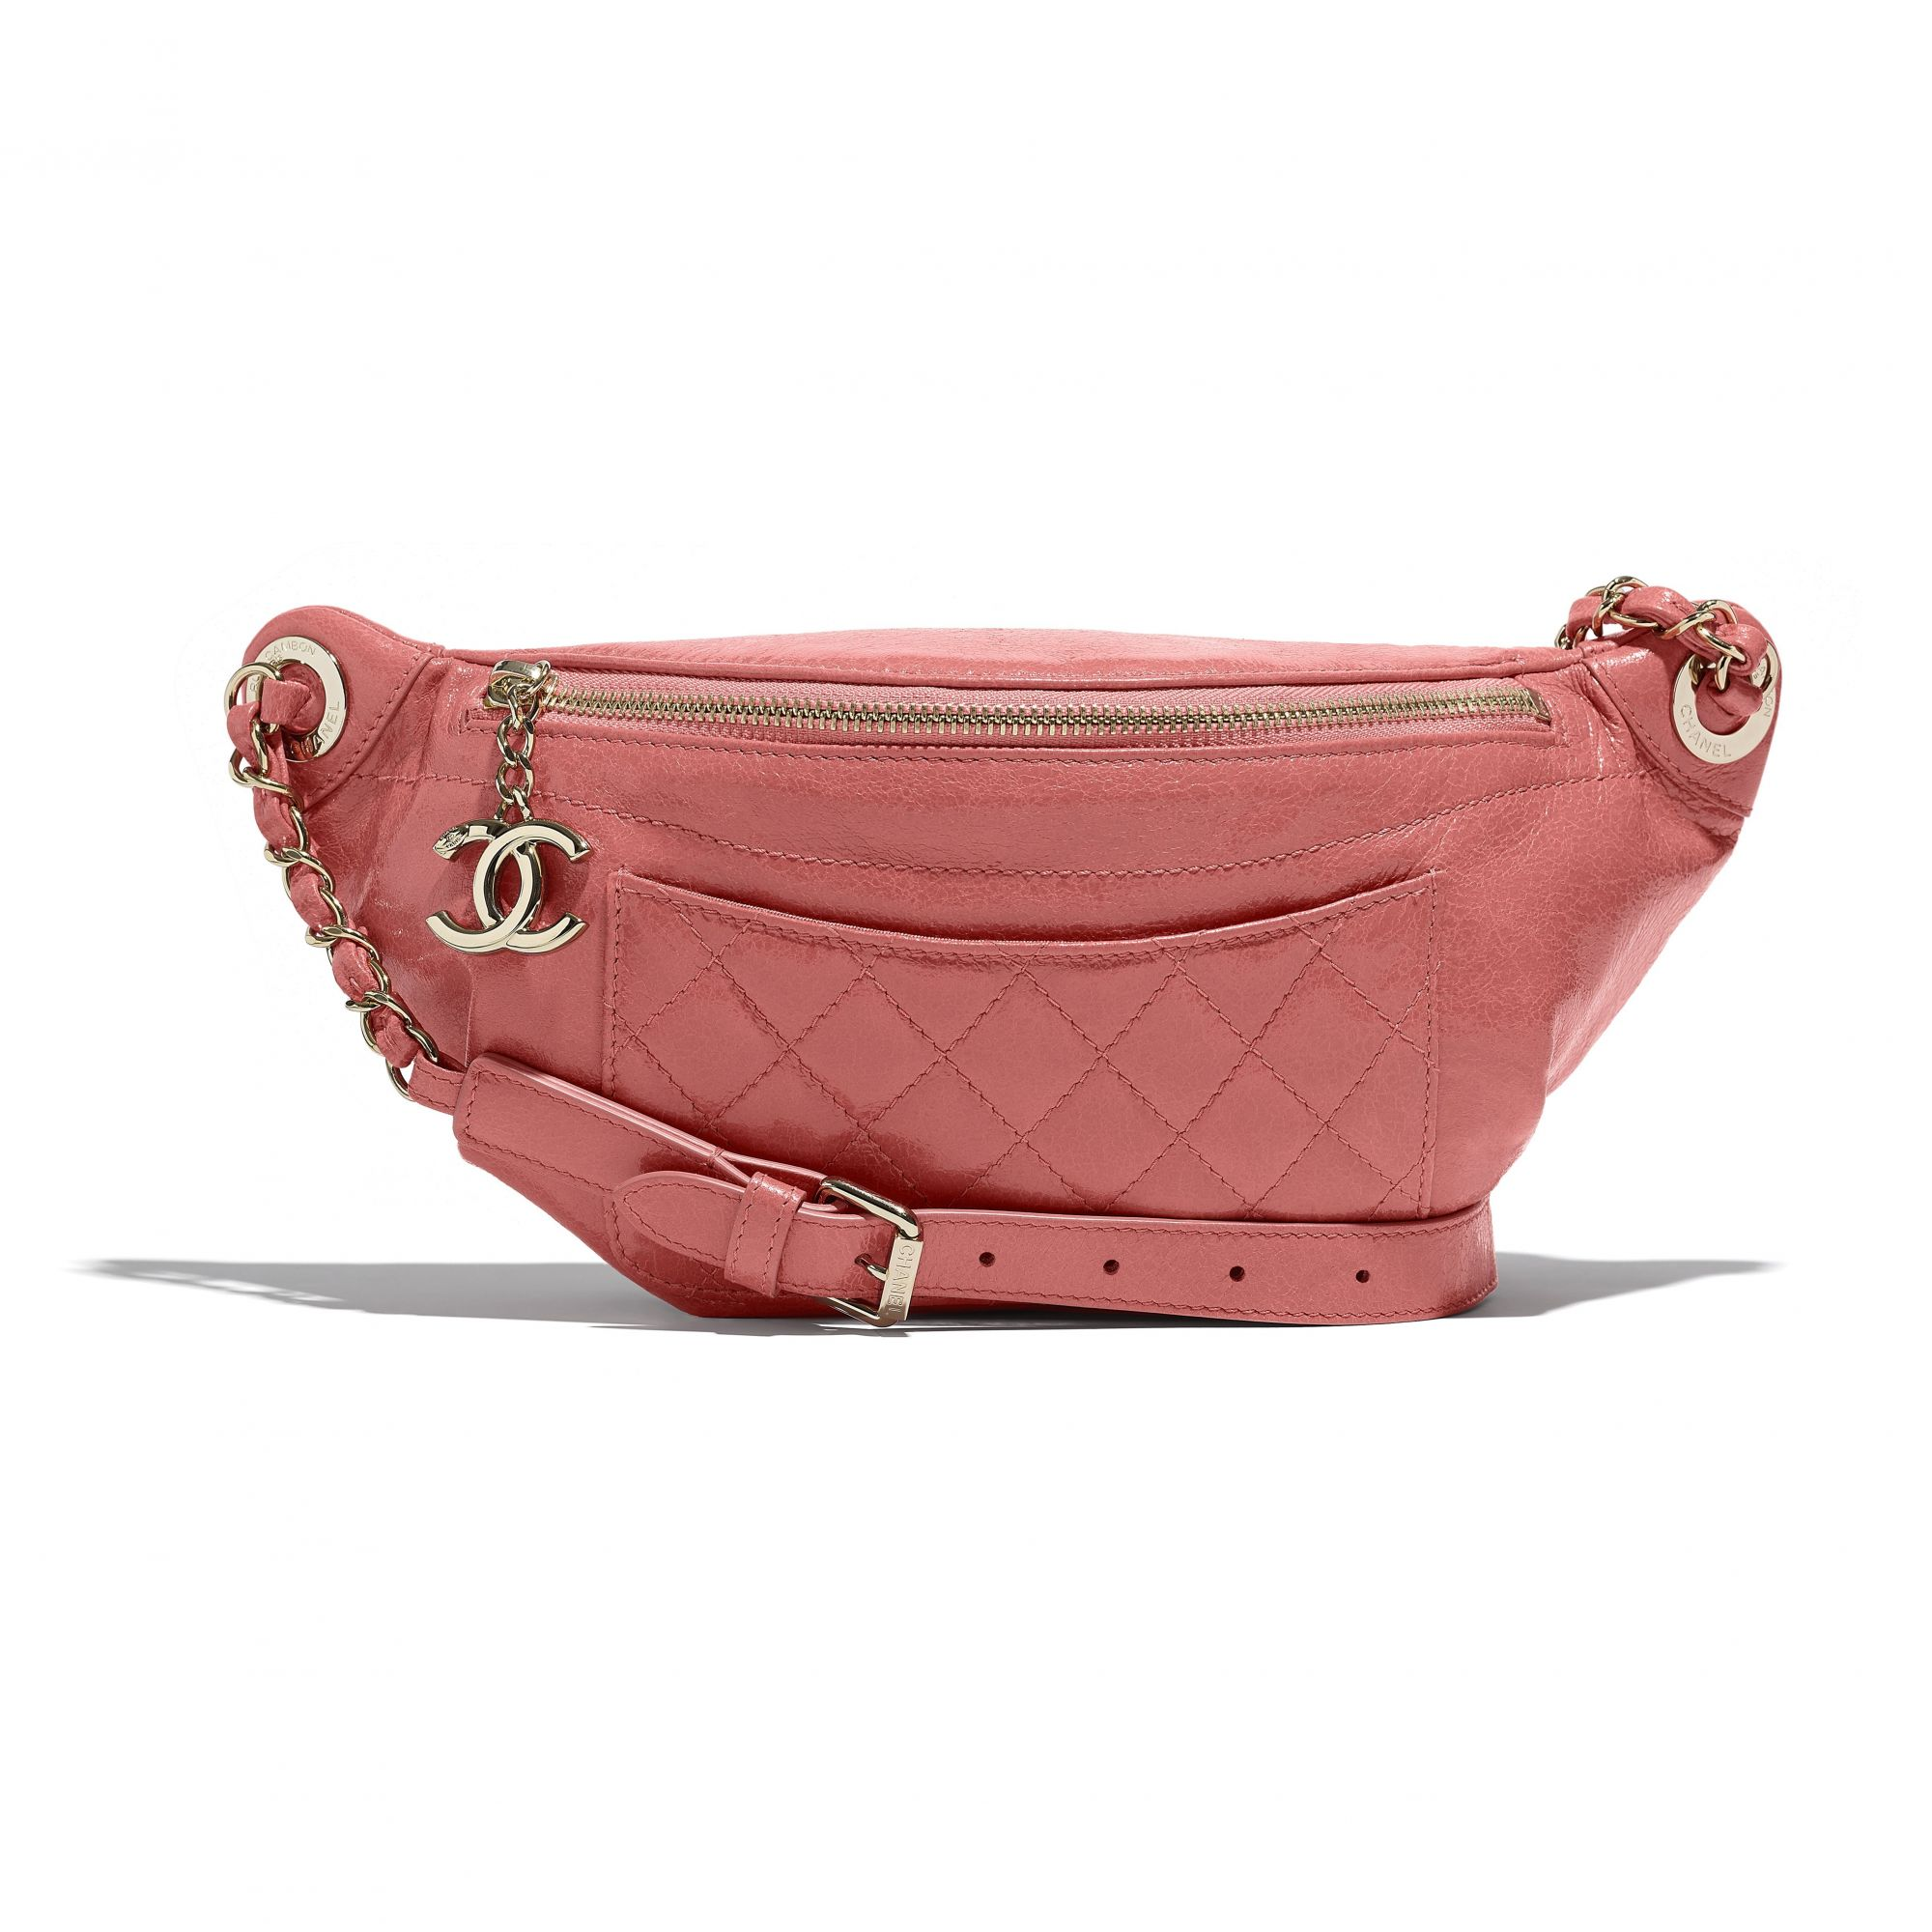 Fanny pack in pink shiny leather